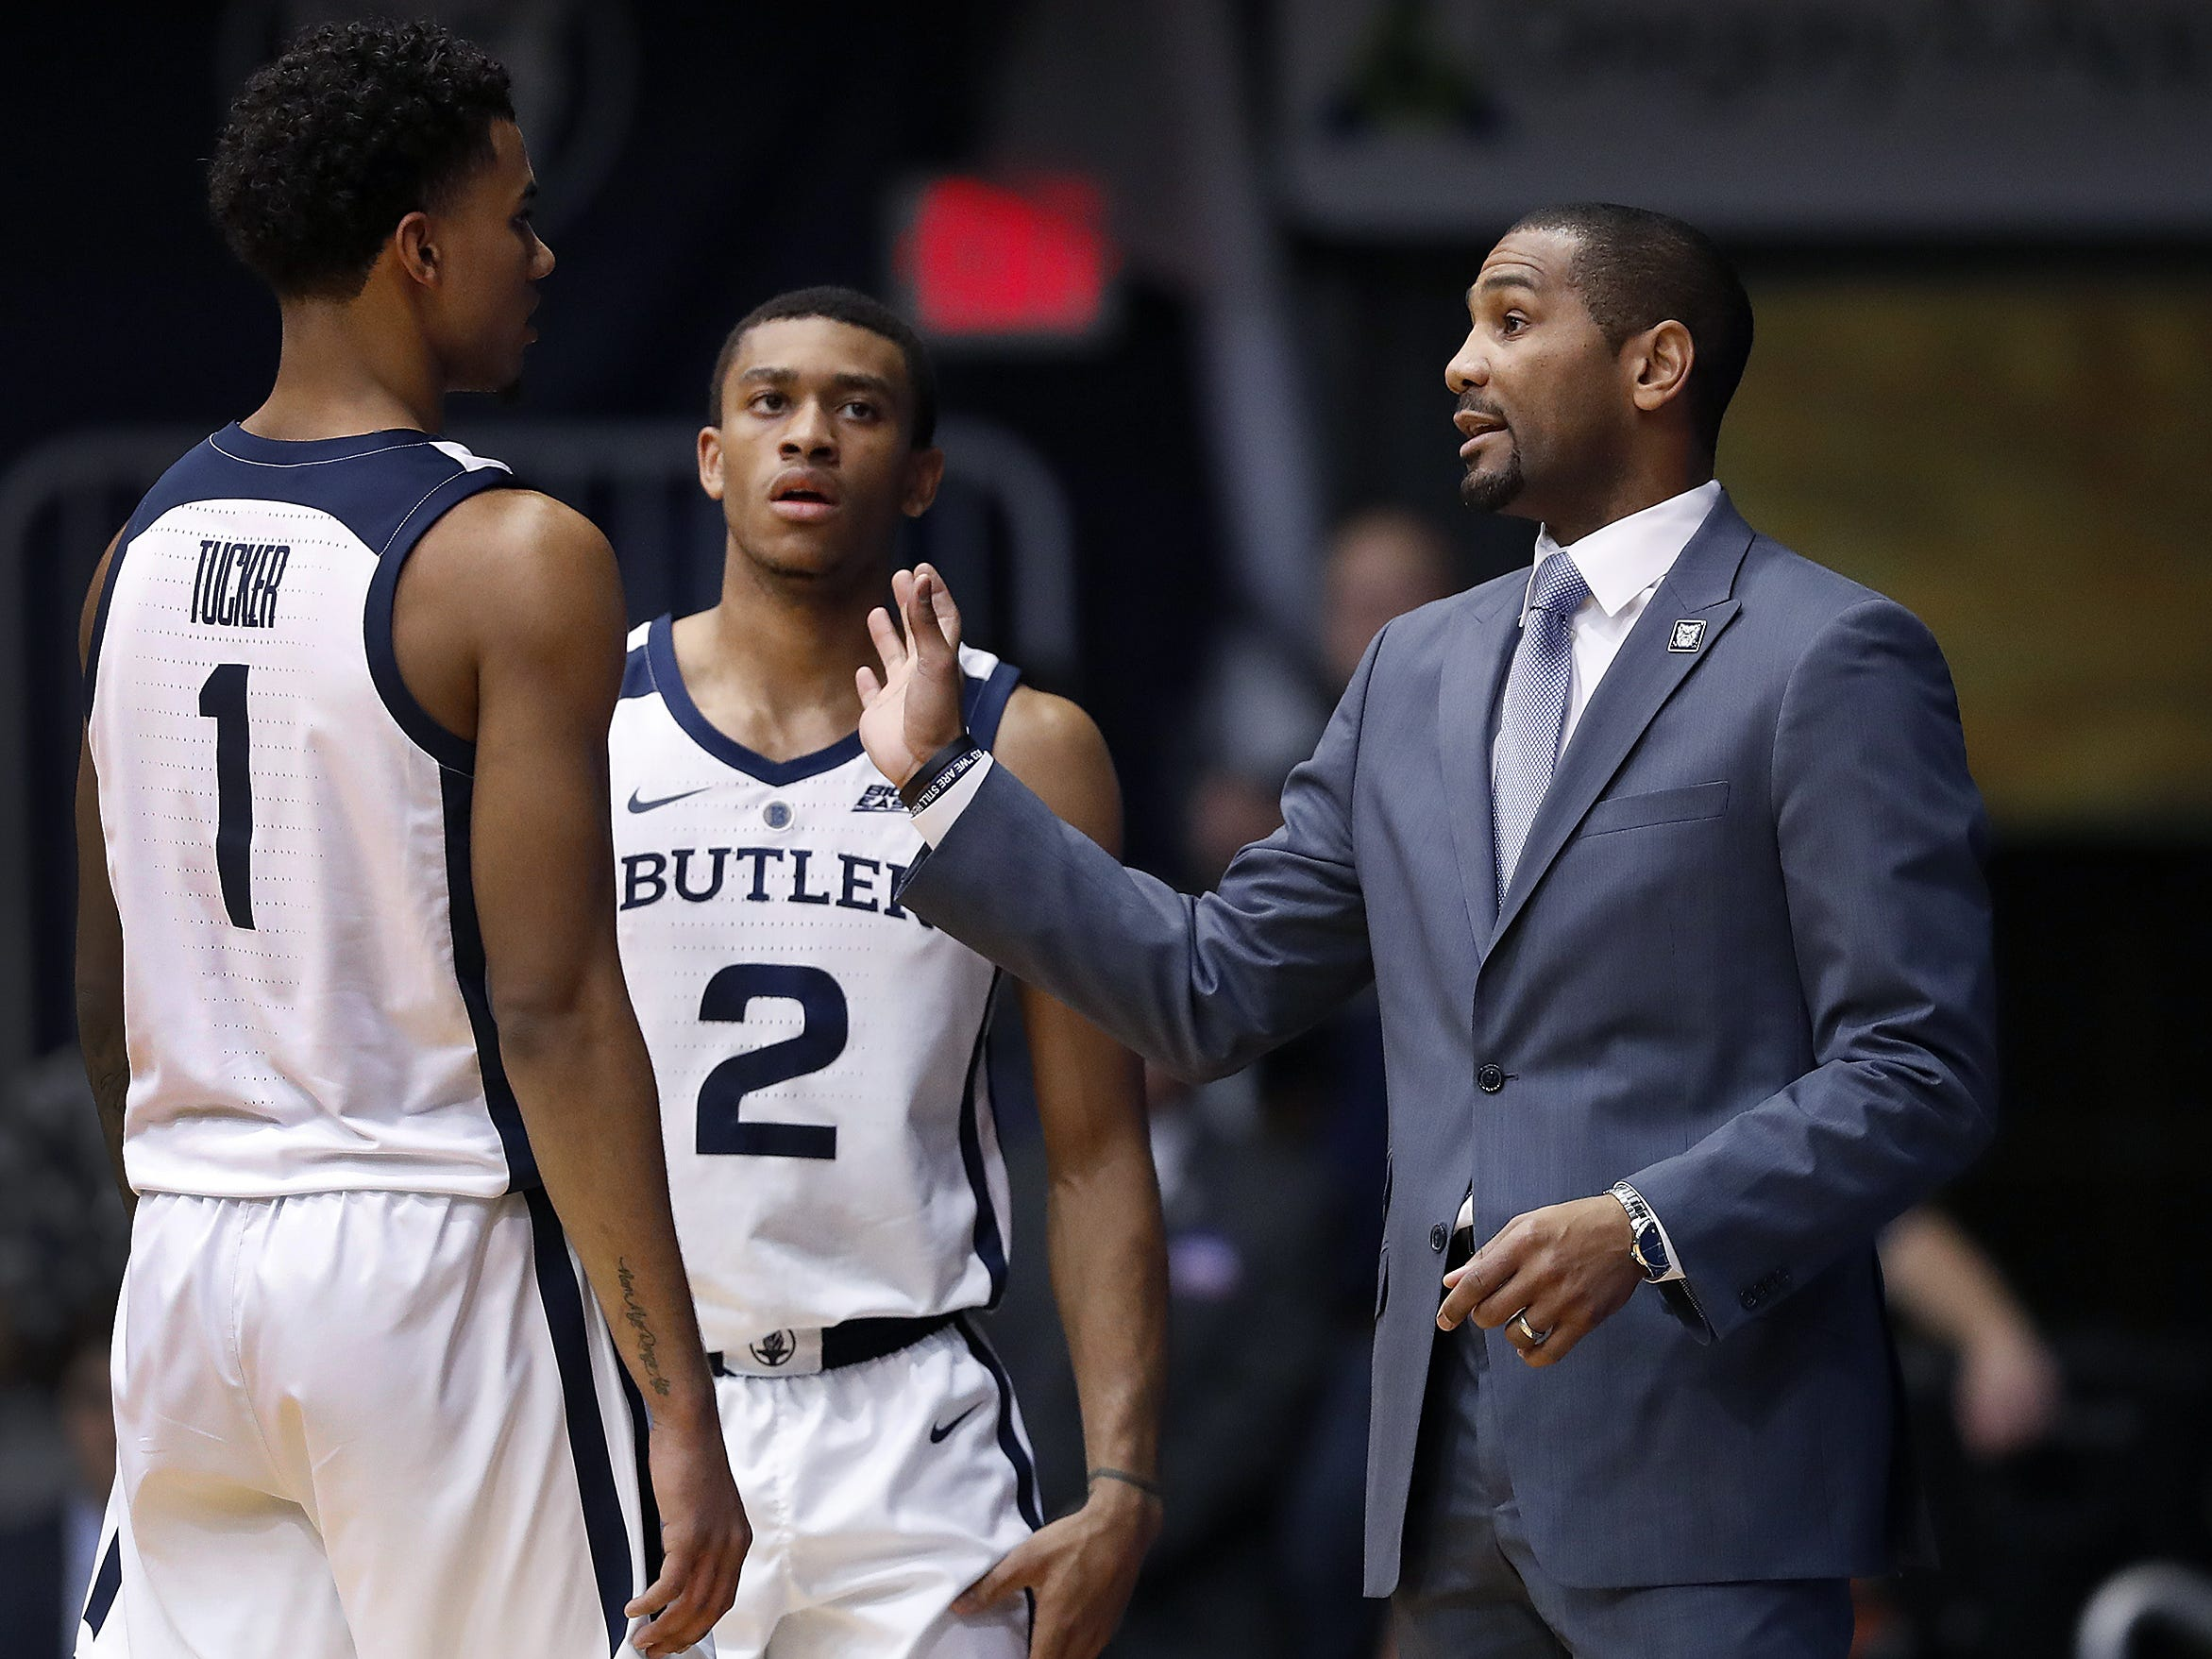 Butler Bulldogs head coach LaVall Jordan talks to Jordan Tucker (1) in the first half of their game at Hinkle Fieldhouse on Monday, Dec. 18, 2018.